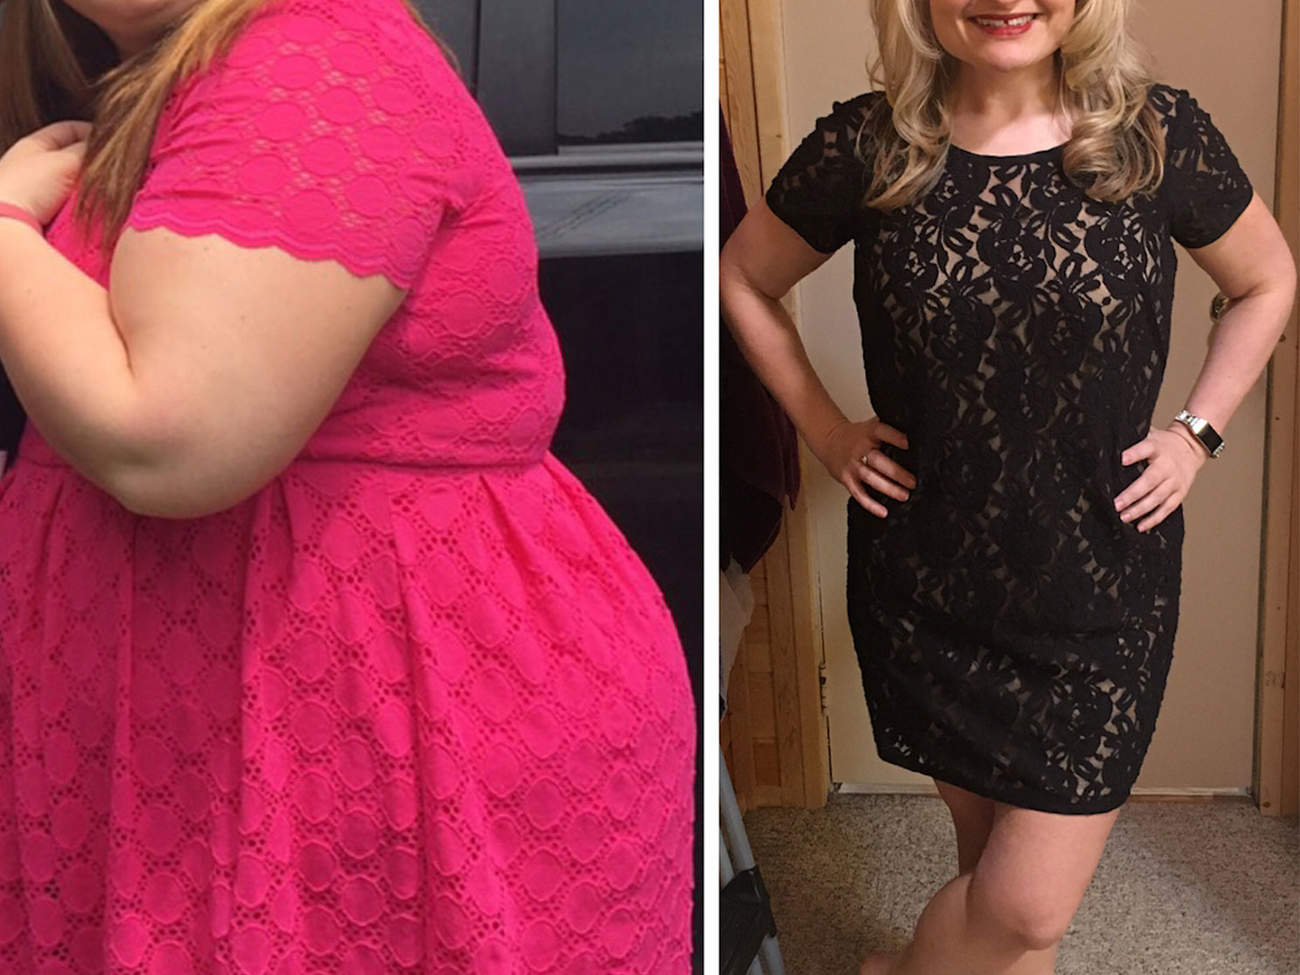 How This Woman Lost 142 Lbs. — and Why She Shared the Journey On Social Media